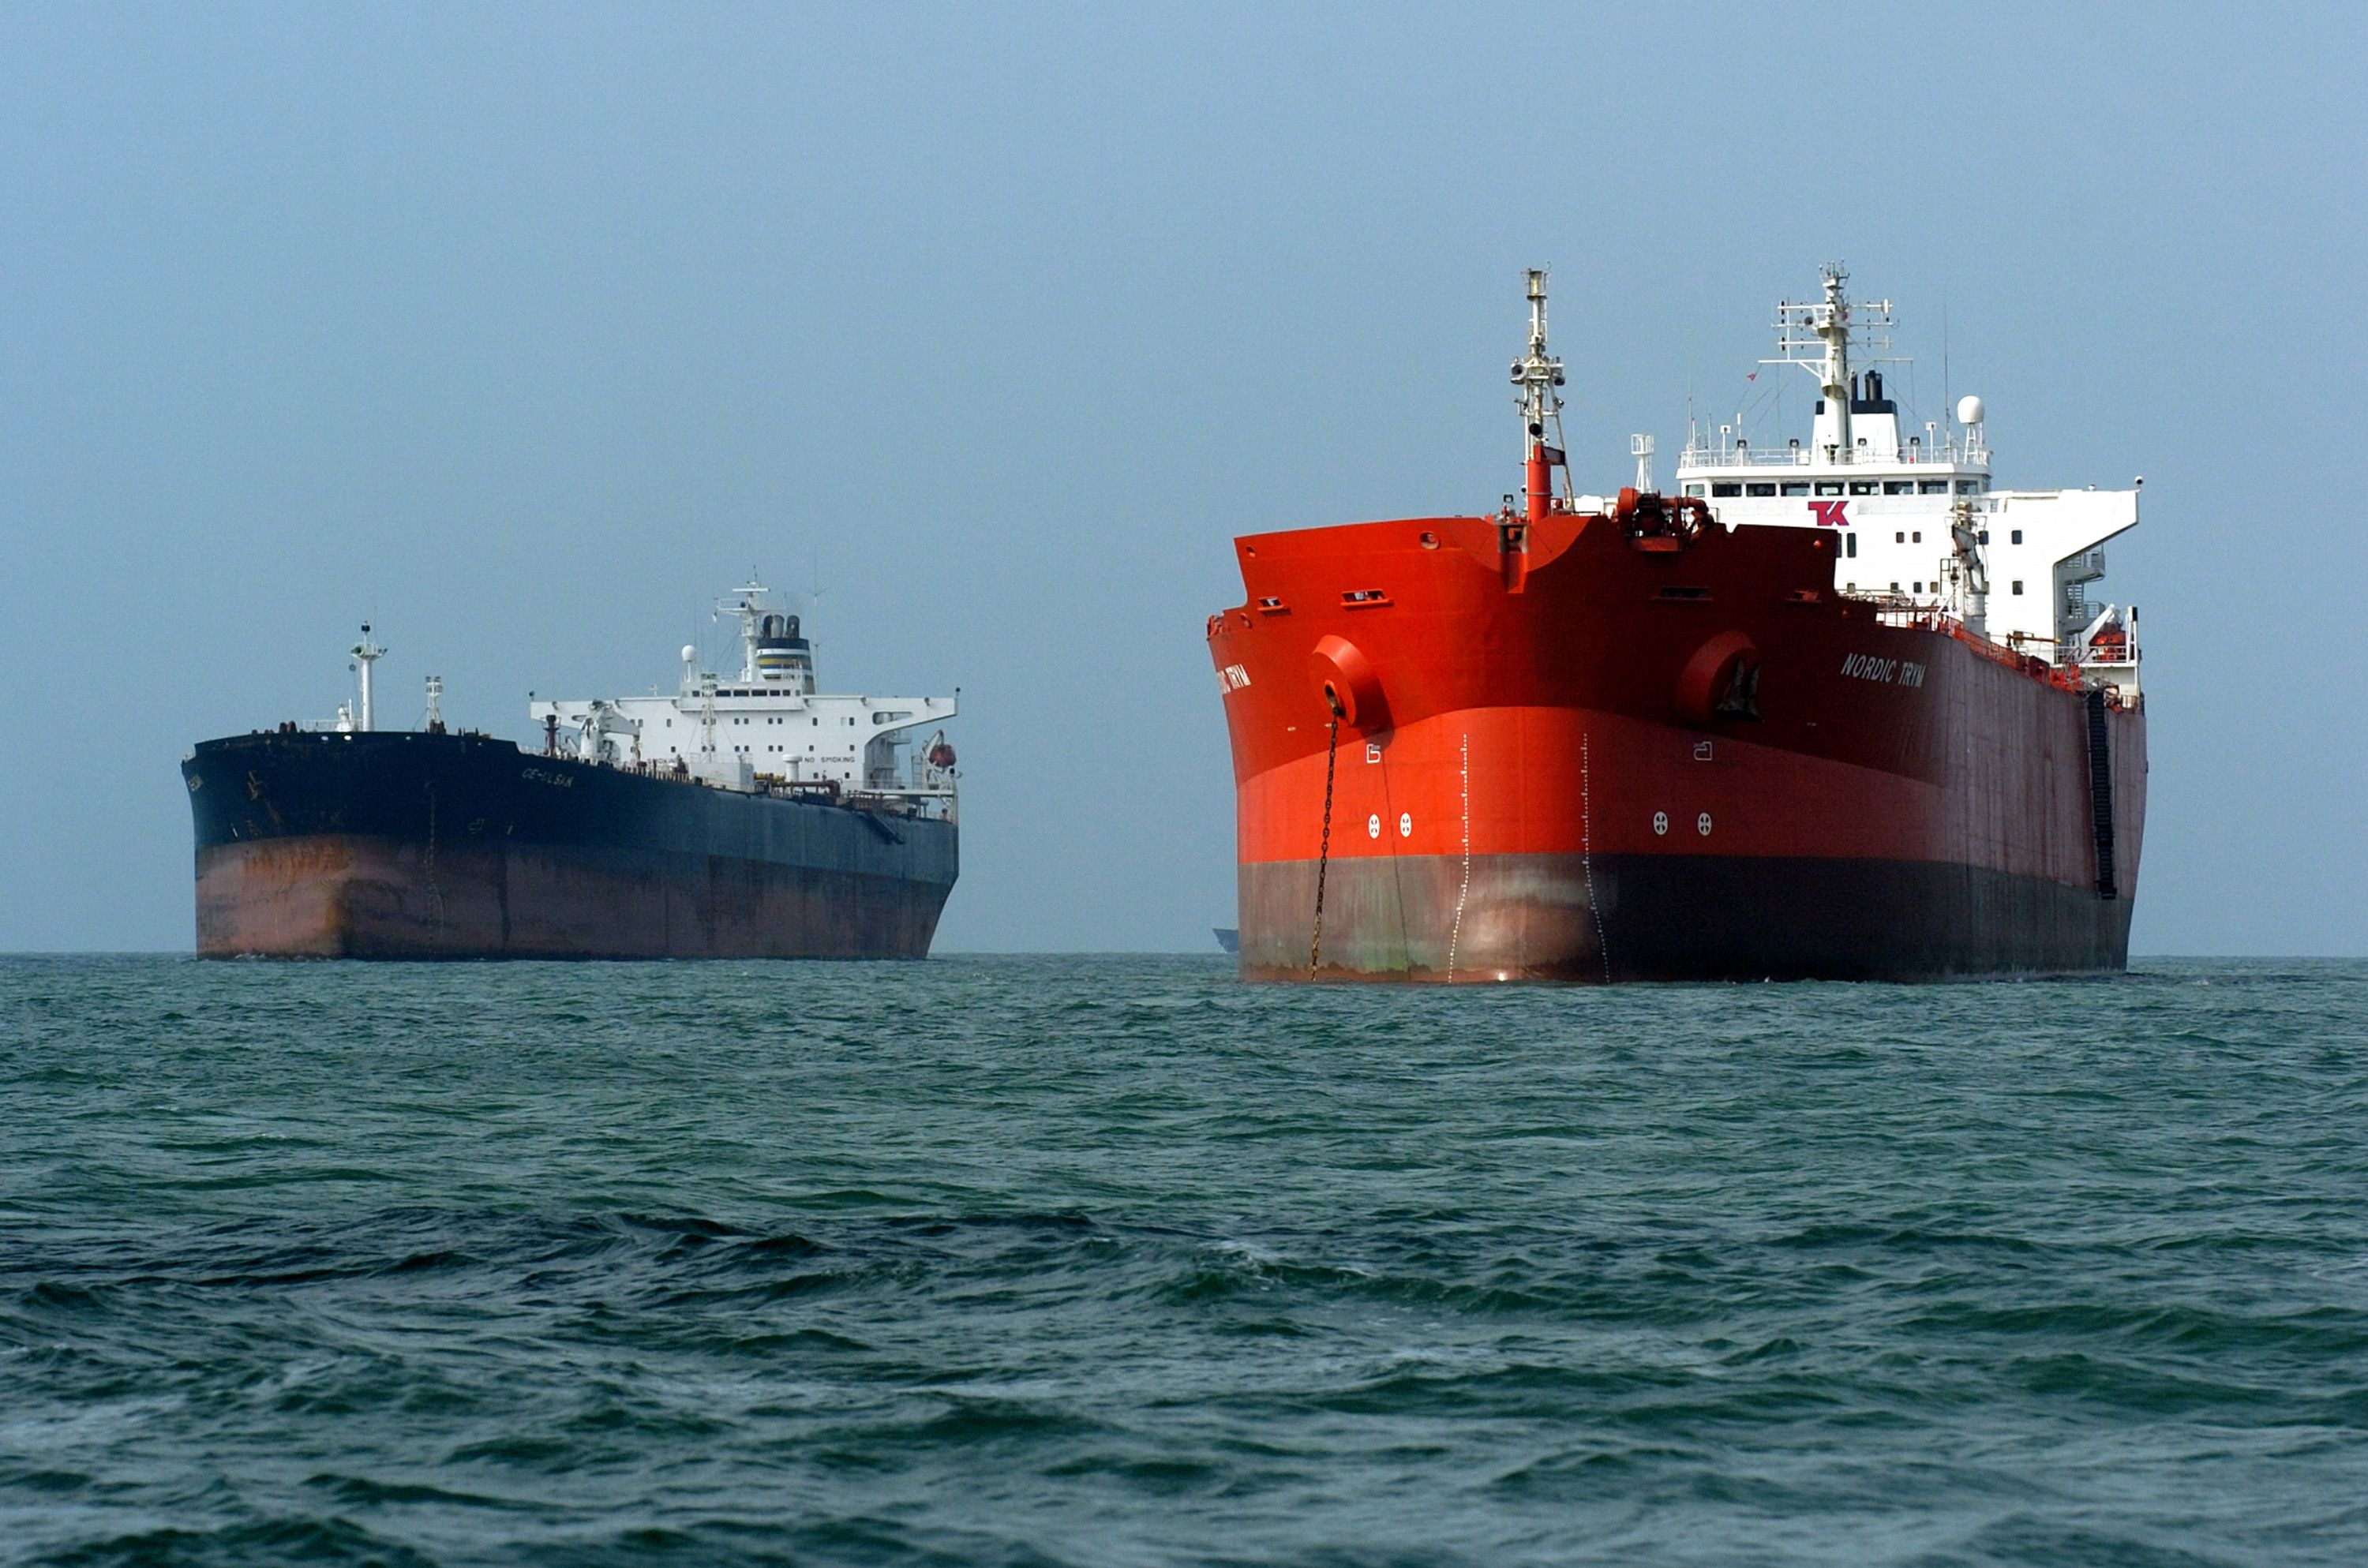 Singapore-flagged oil tankers held in Yemen port, Transport